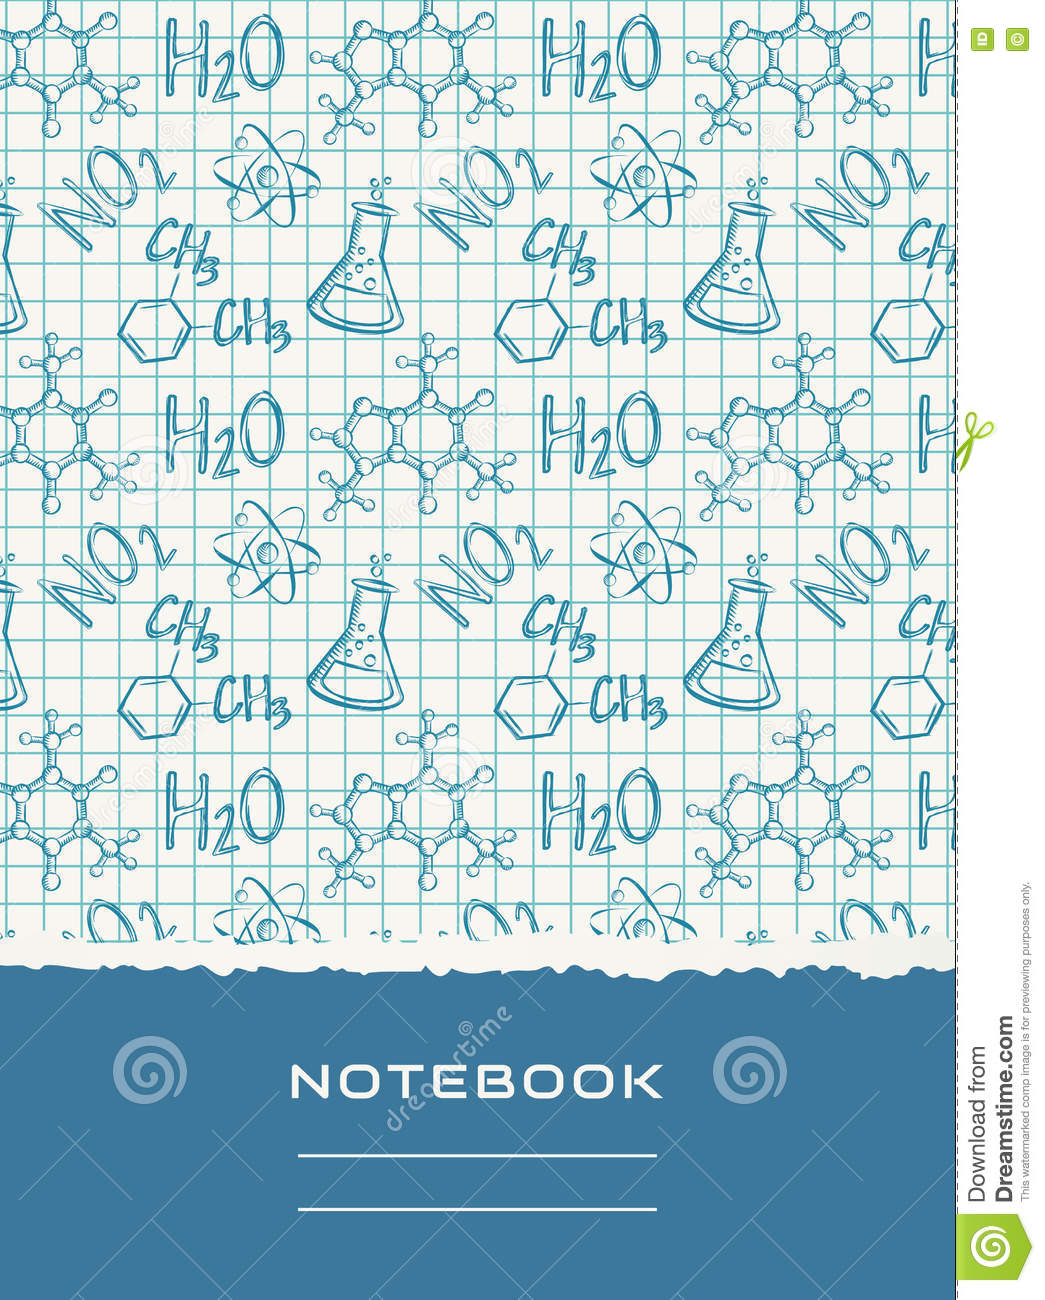 School Notebook Cover Design : Notebook cover design vector chemical background stock